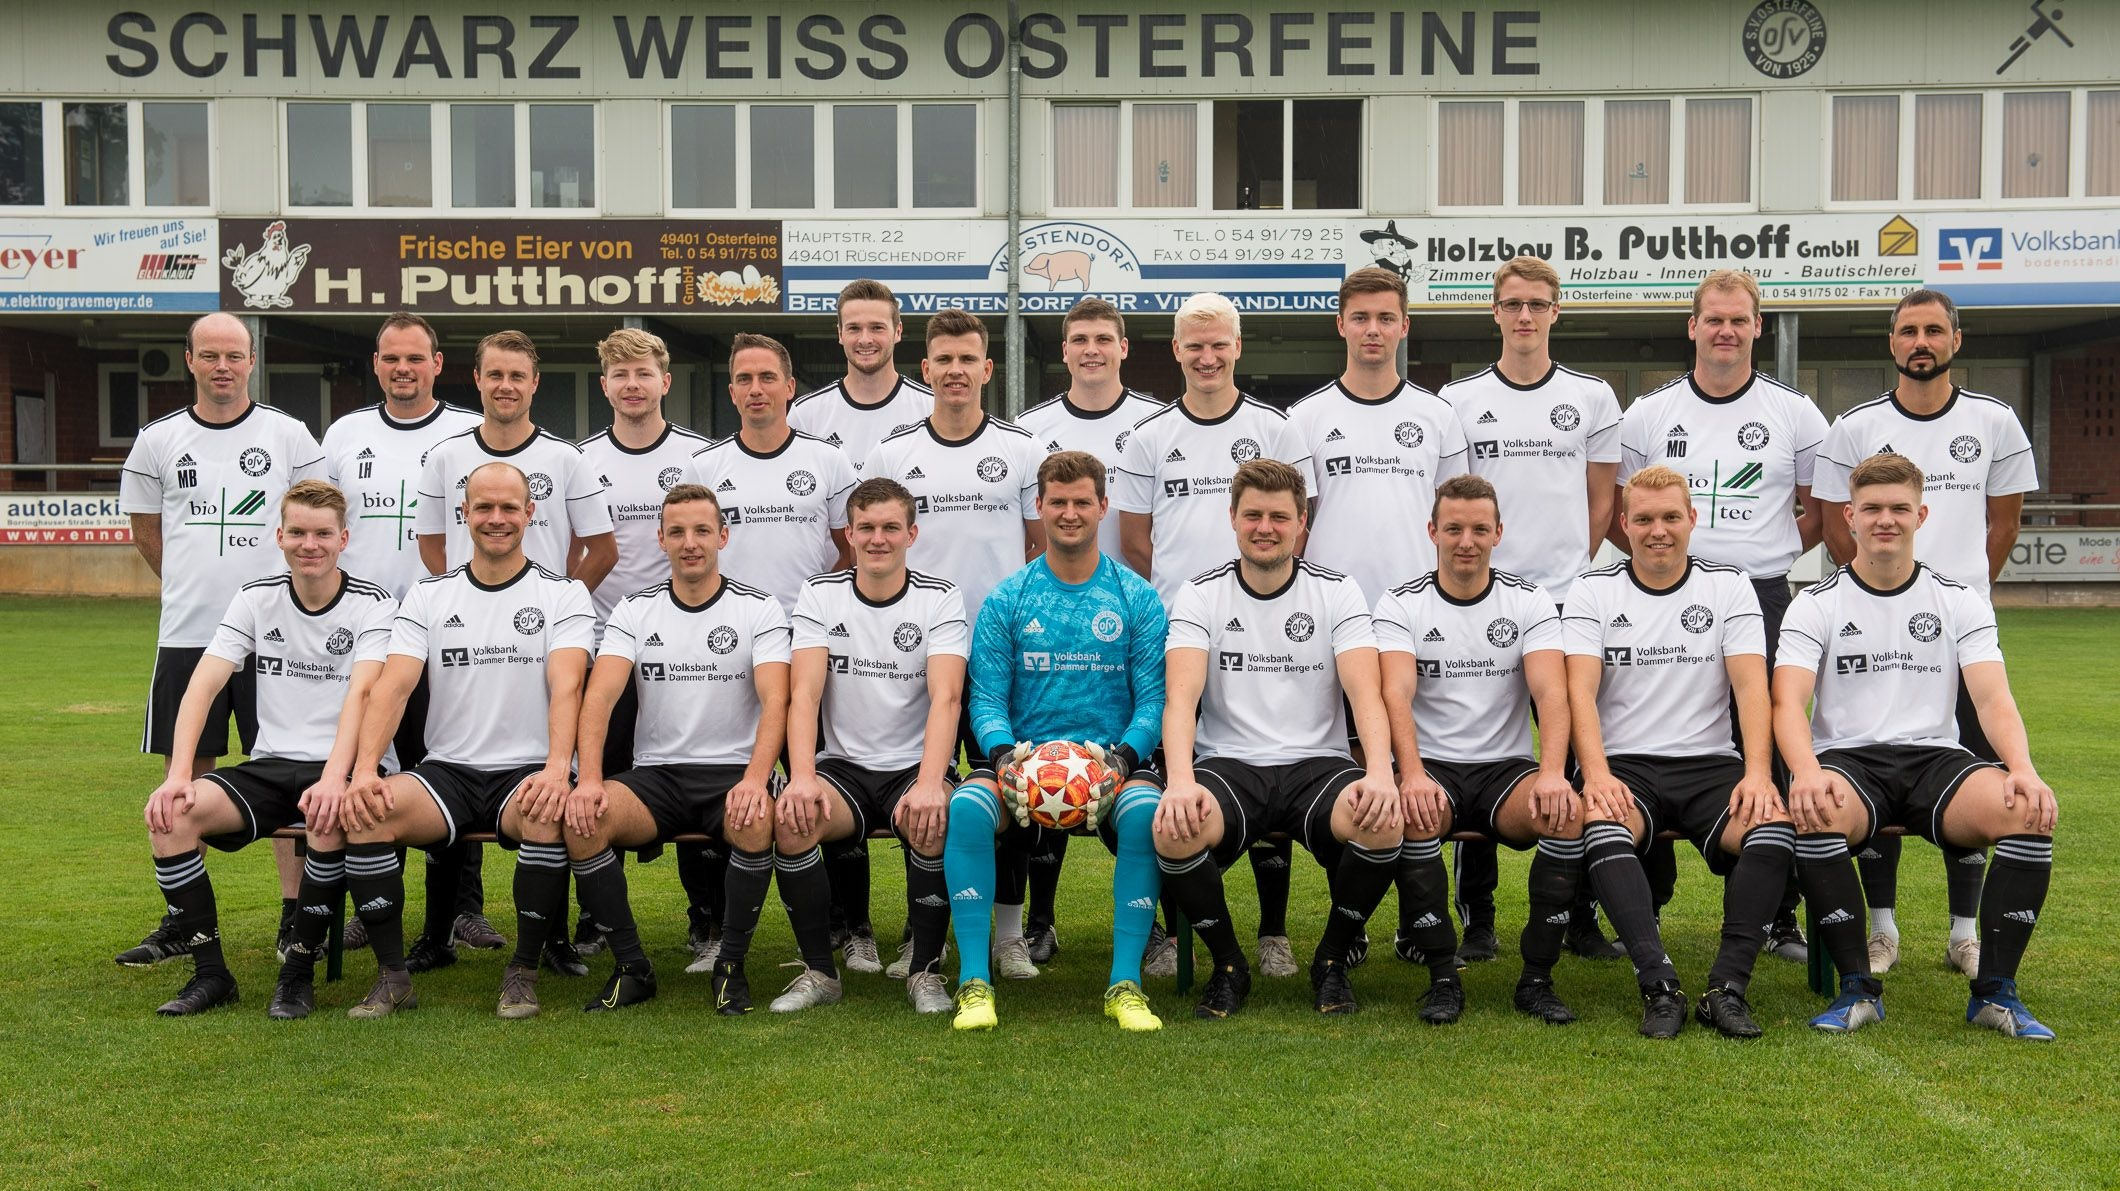 SW Osterfeine: Hinten von links Co-Trainer Michael Bergmann, Betreuer Lukas Harpenau, Christian Hegerfeld, Julian Stöppelmann, Christian Schiffbänker, Steffen Kreymborg, Patrick Ihorst, Freddy Lampe, Felix Piening, Erik Schulte, Lukas Selke, Teammanager und Torwarttrainer Marco Otte sowie Spielertrainer Mehmet Koc; vorne von links Maximilian bei der Hake, Jan Schomaker, Lukas Decker, Florian Fangmann, Max Schallau, Florian Markus, Johannes Decker, Philipp Rusche und Steffen Wehri. Foto: Wenzel